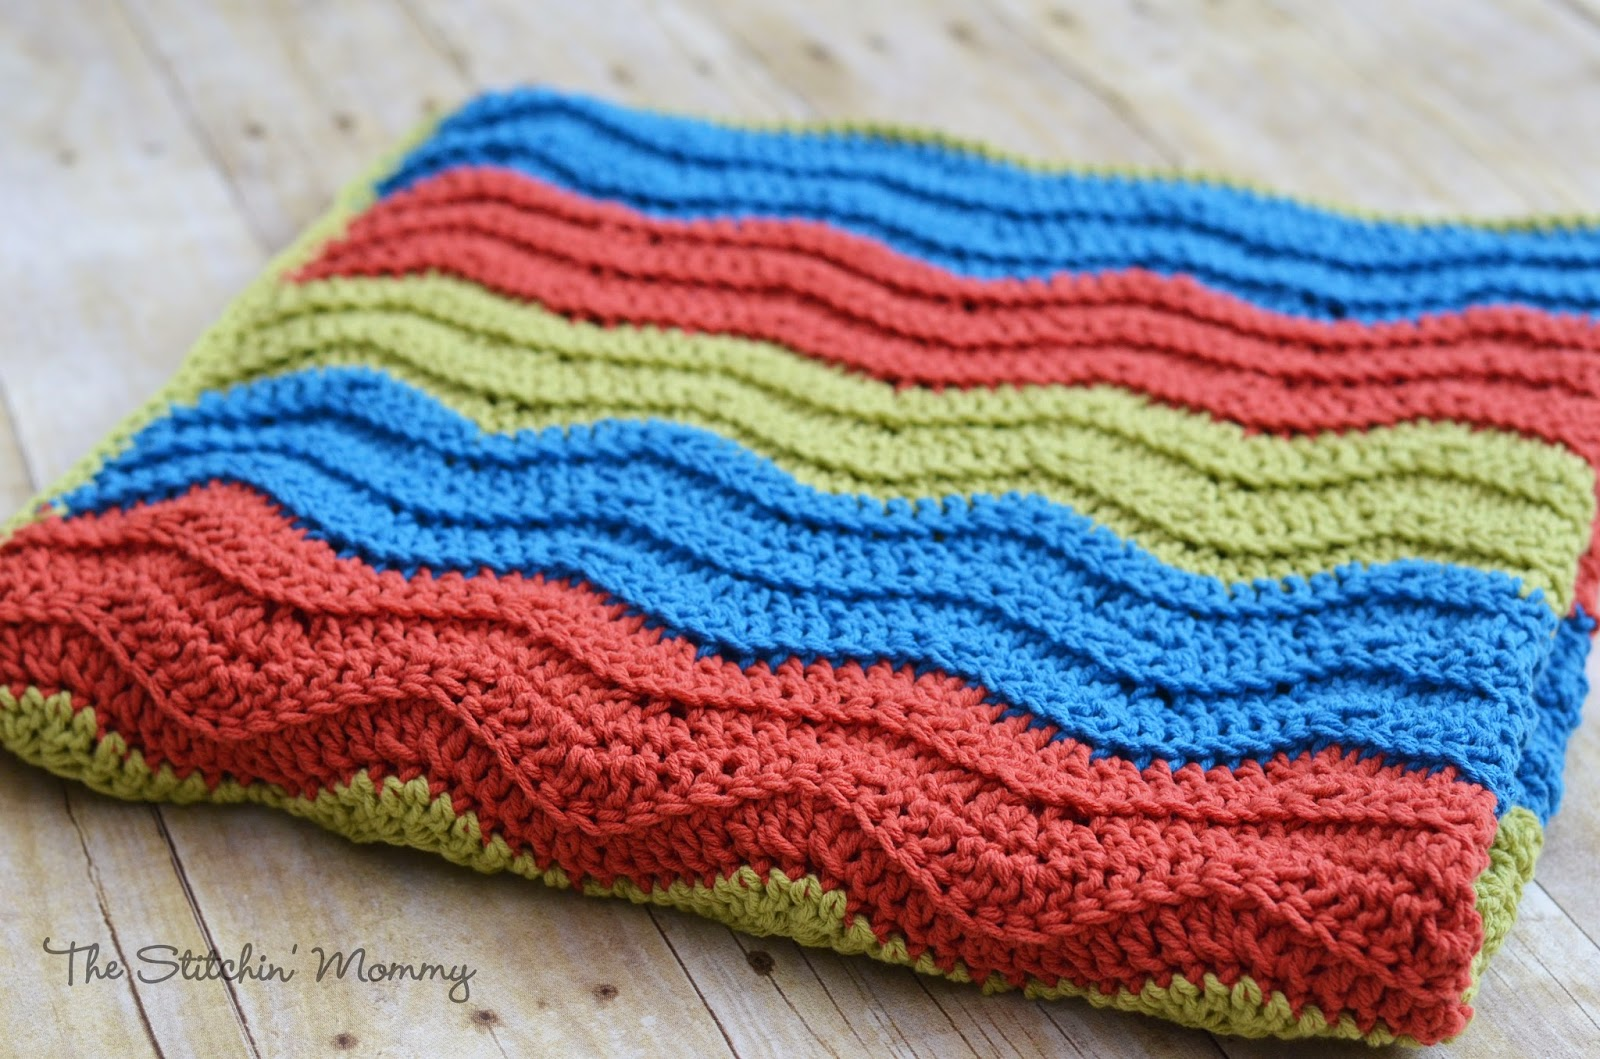 Crochet Patterns Ripple : Easy Crochet Ripple Blanket www.thestitchinmommy.com